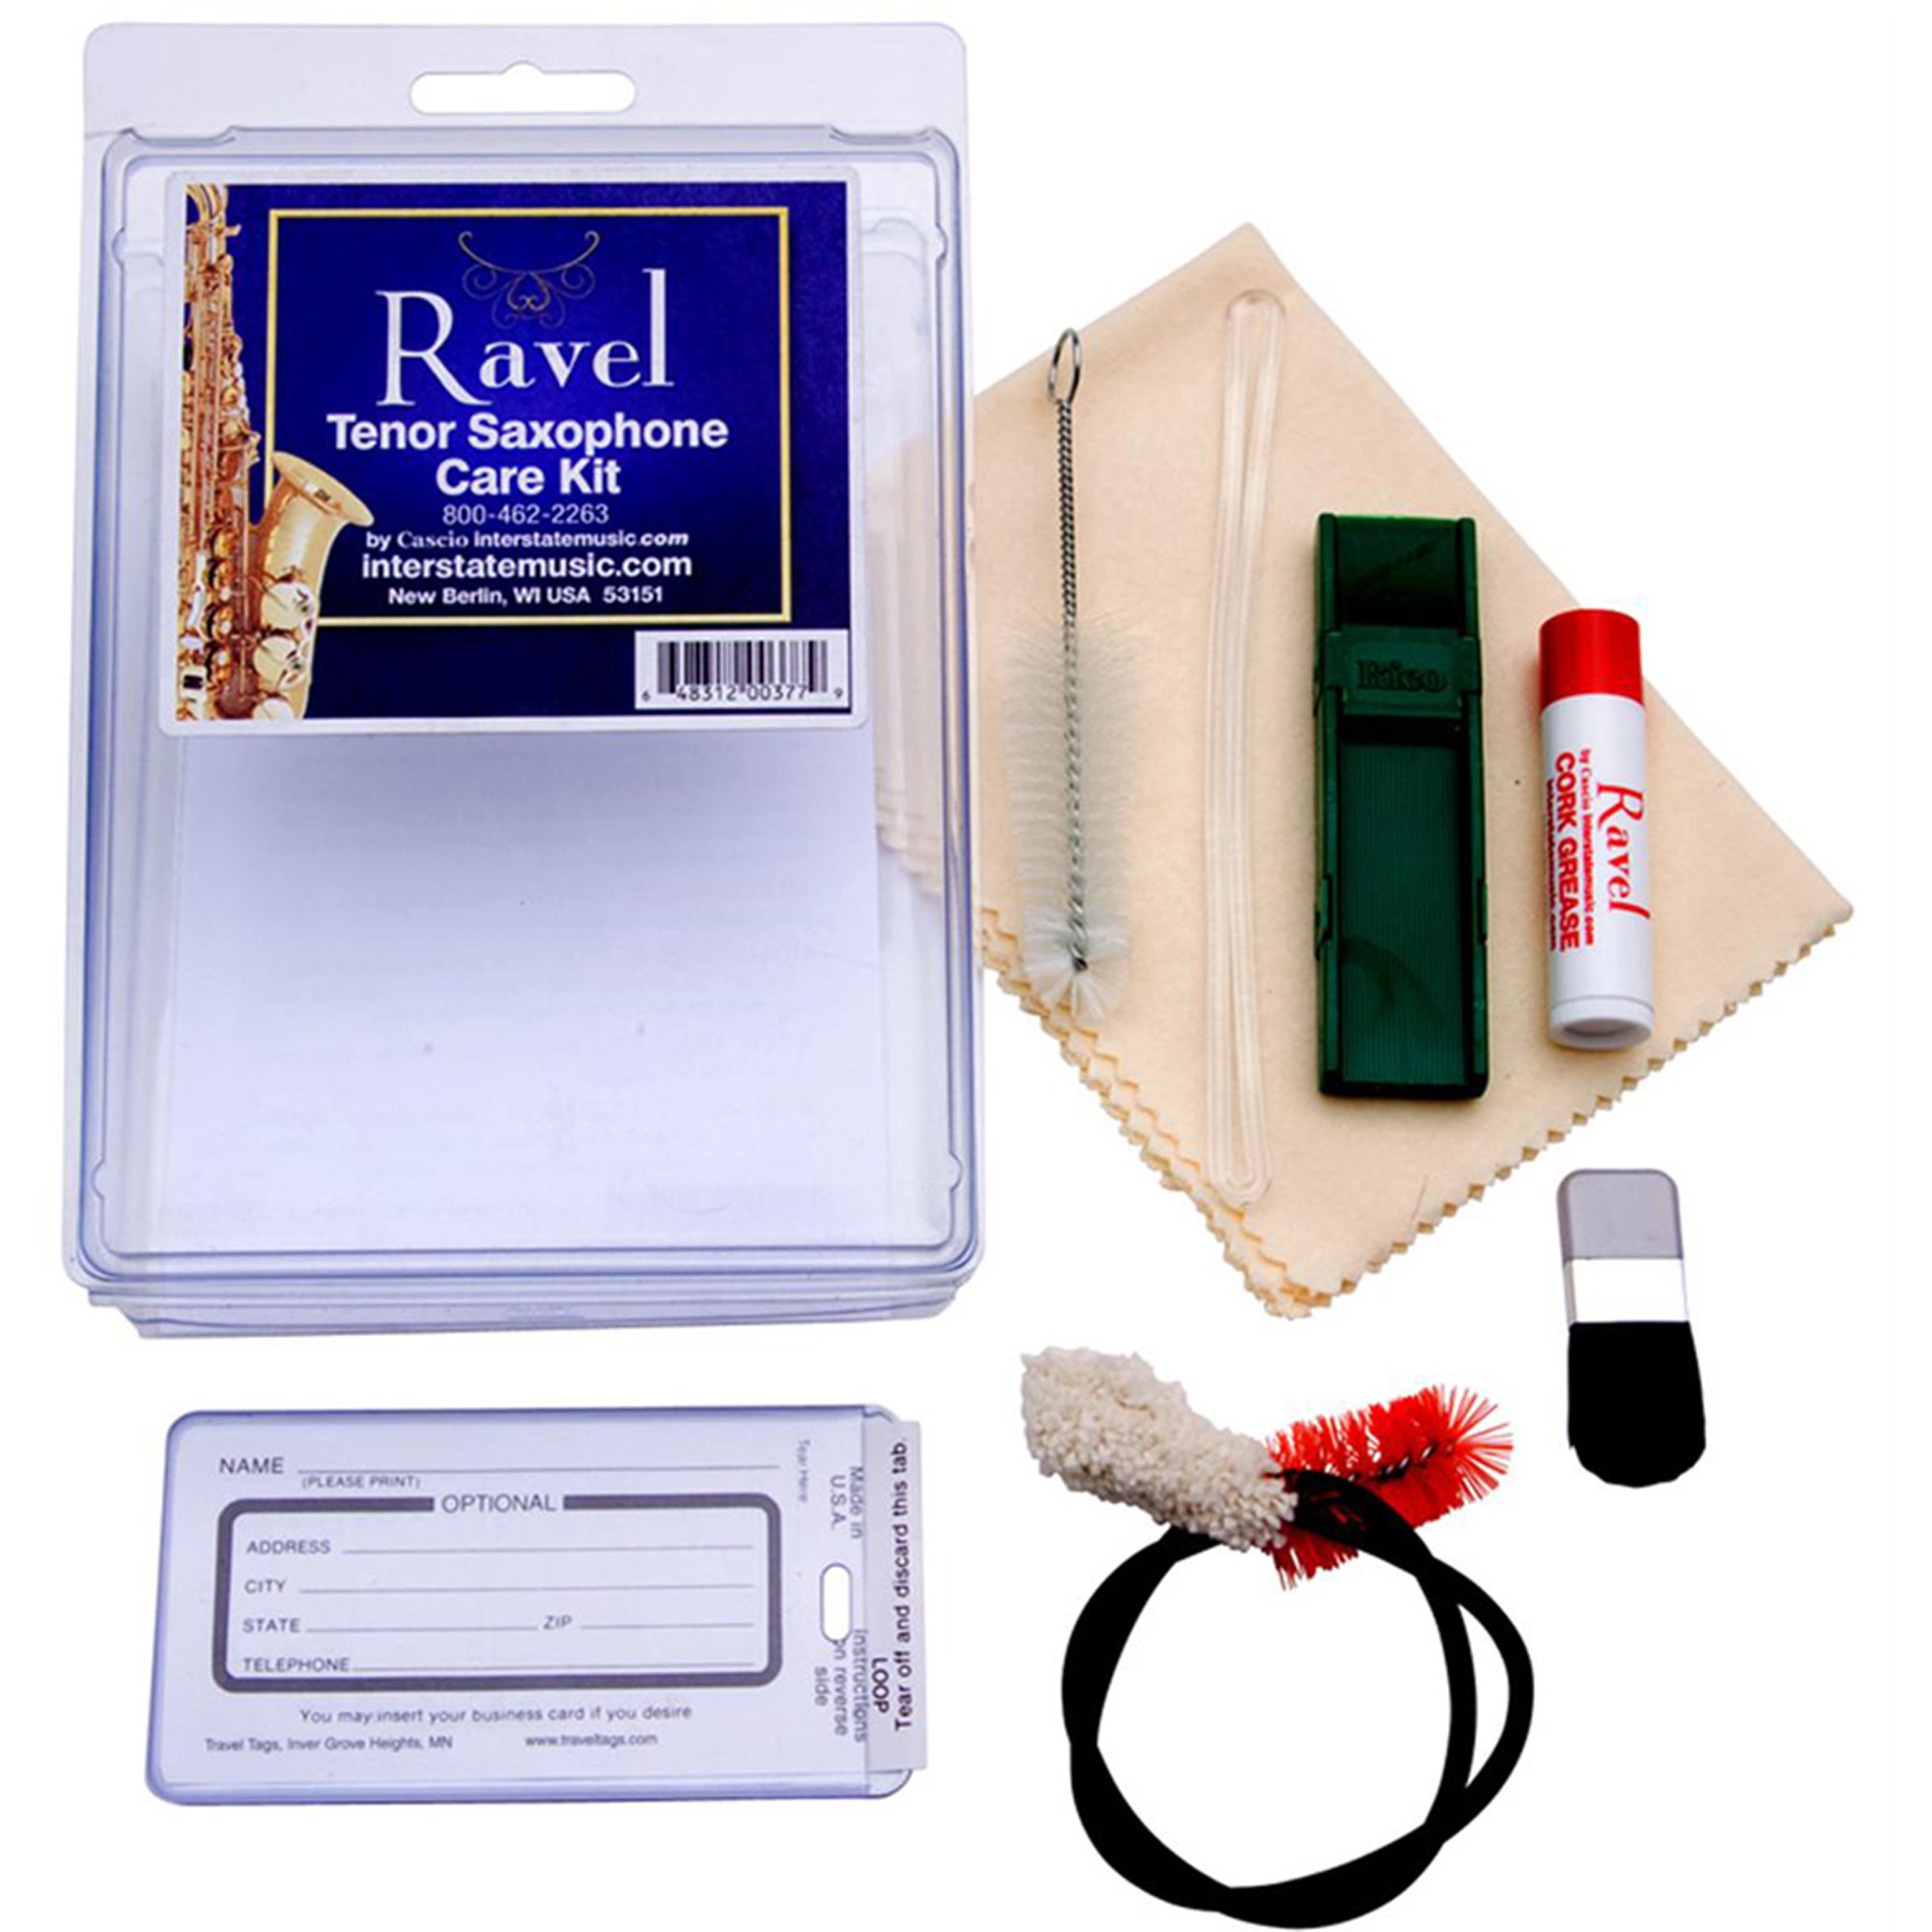 Ravel OP342, Tenor Sax Care Kit